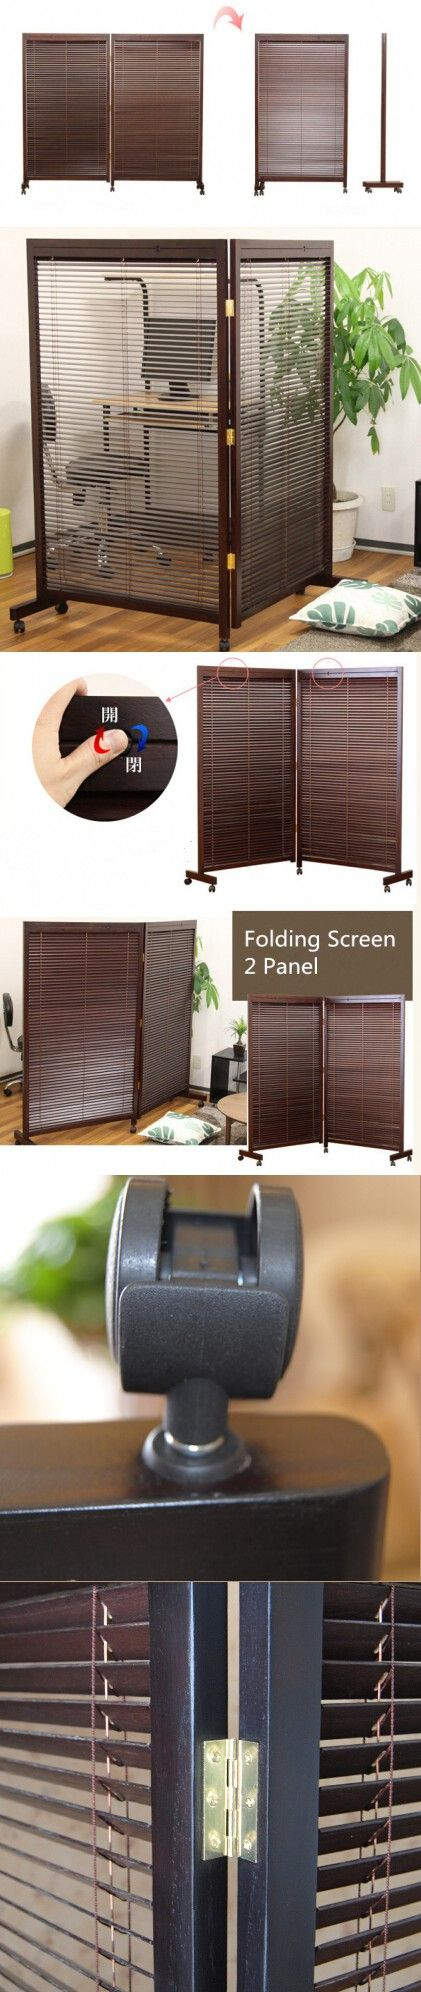 Page not found screenflex portable room iders - Japanese Folding Screen 2 Panel Wood Room Divider Home Decor Oriental Decorative Portable Asian Furniture